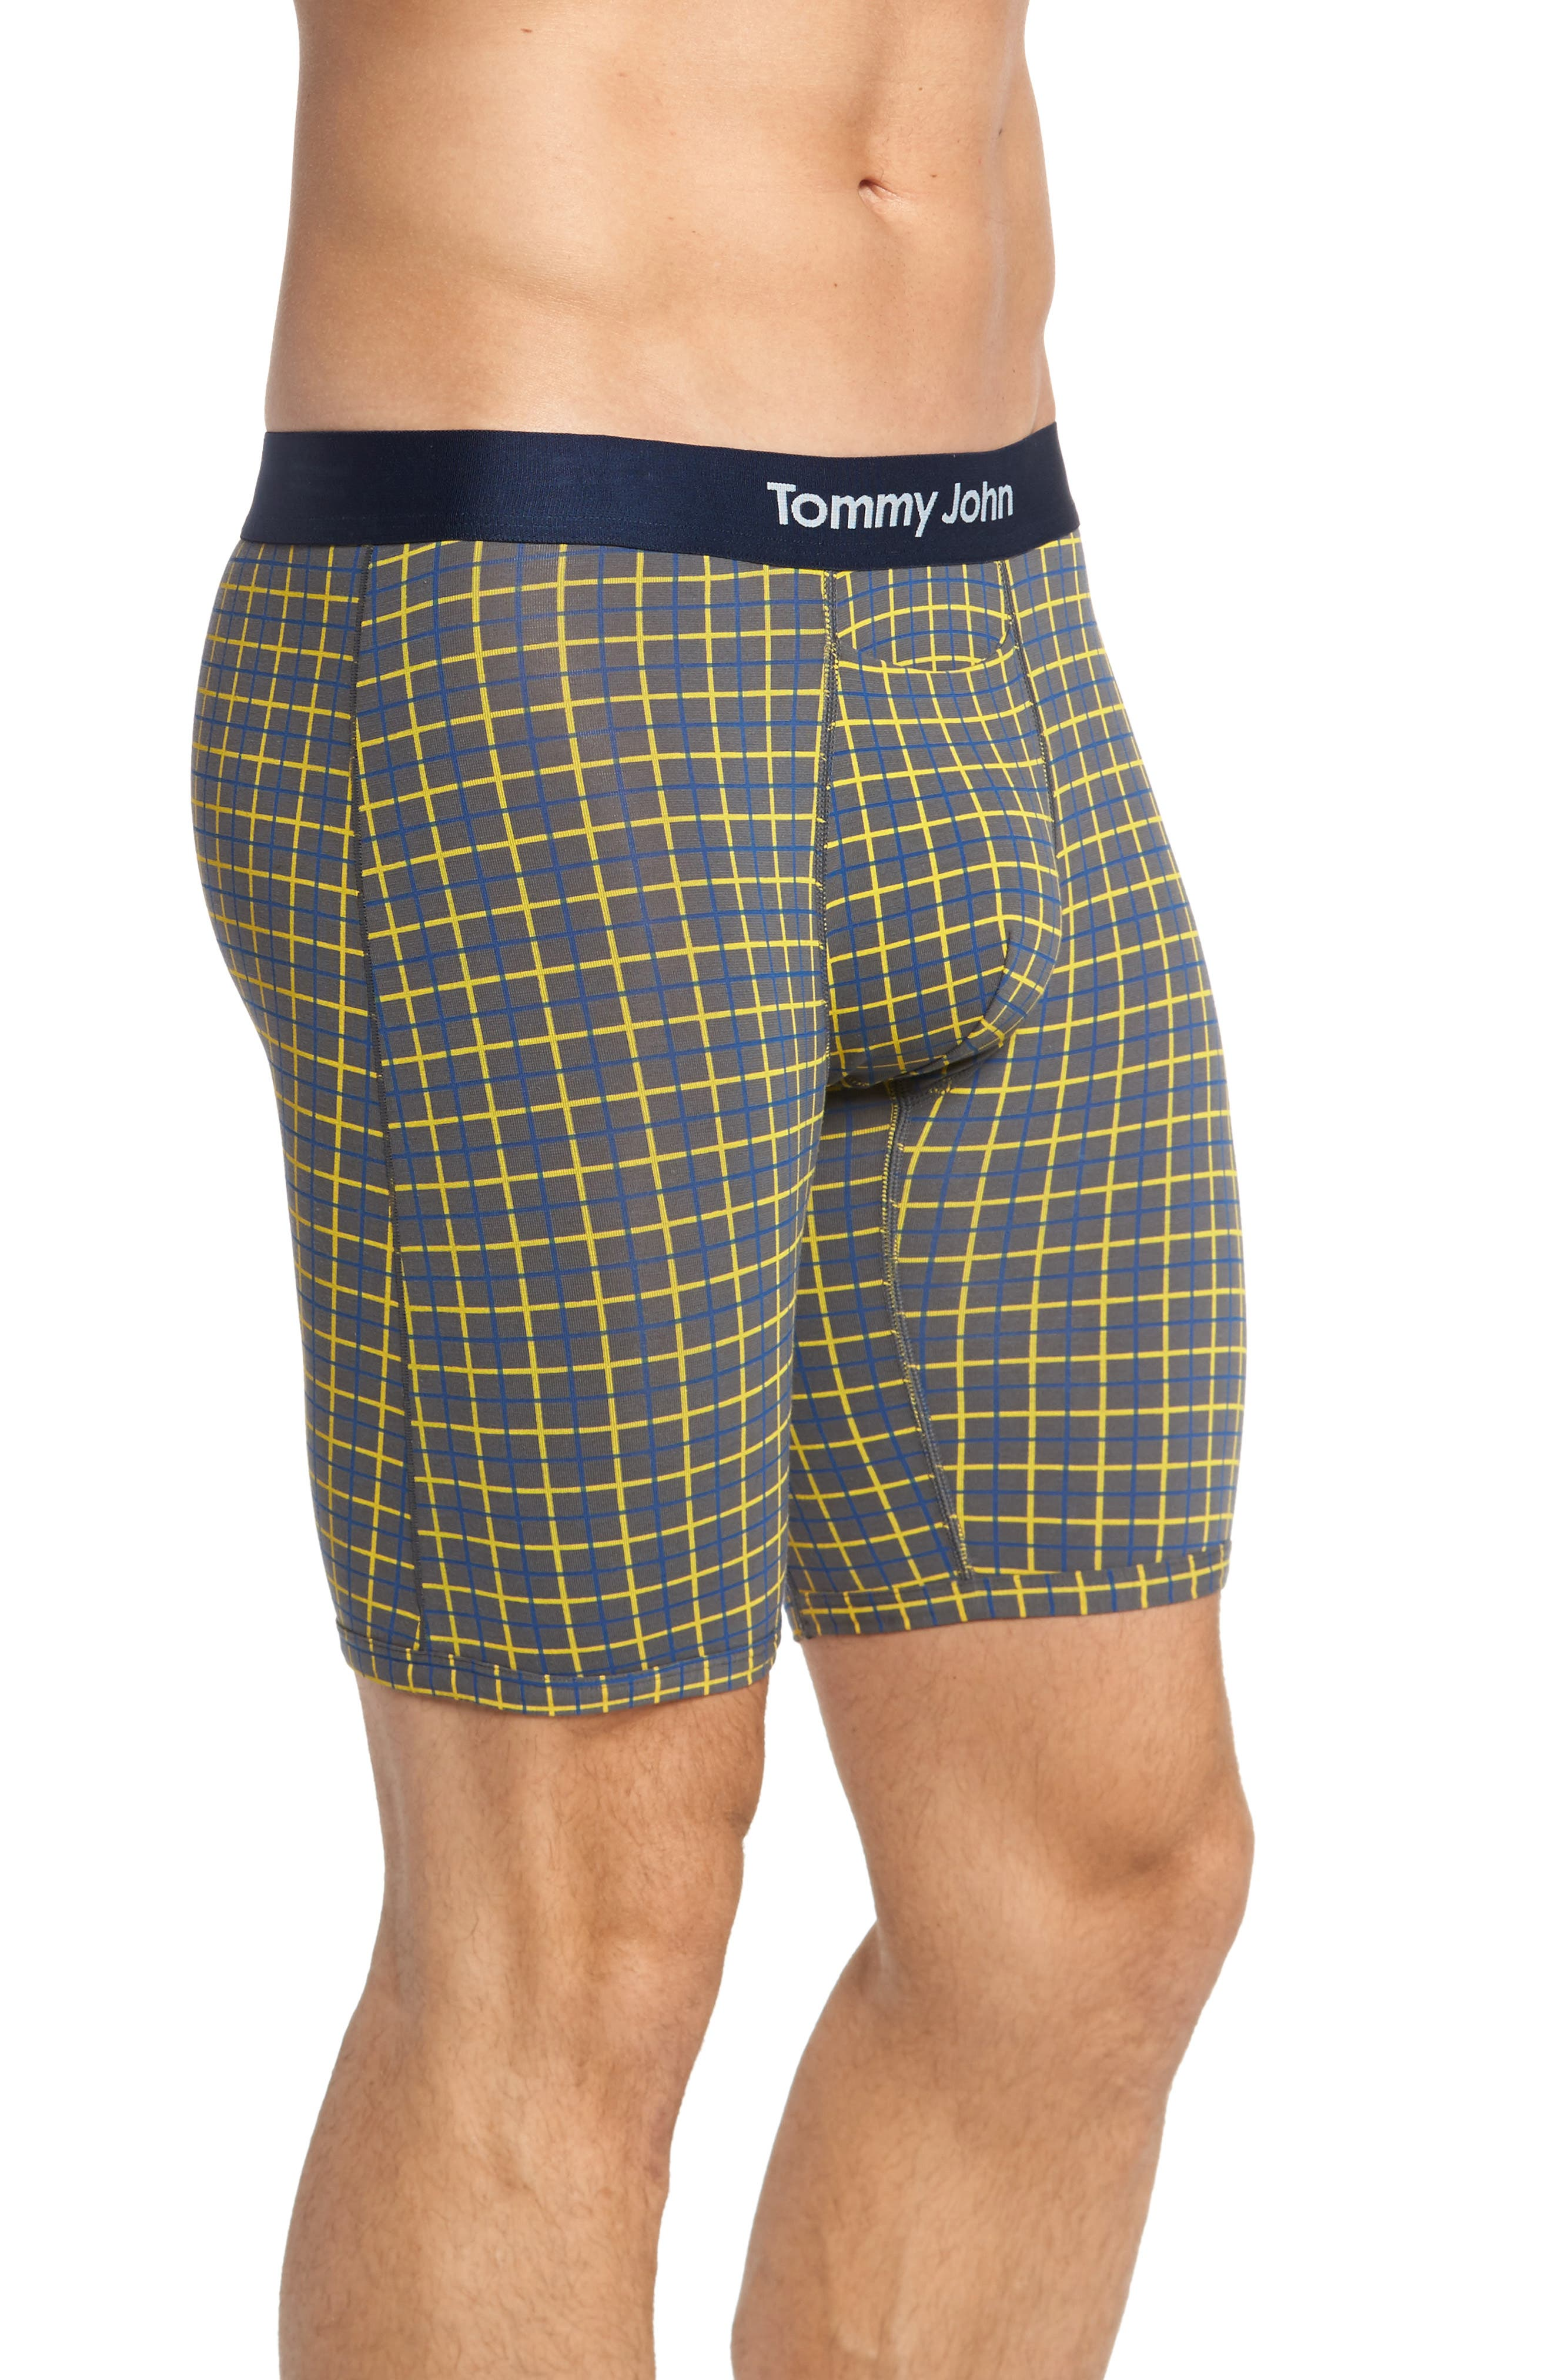 Cool Cotton Quad Print Boxer Briefs,                             Alternate thumbnail 3, color,                             052